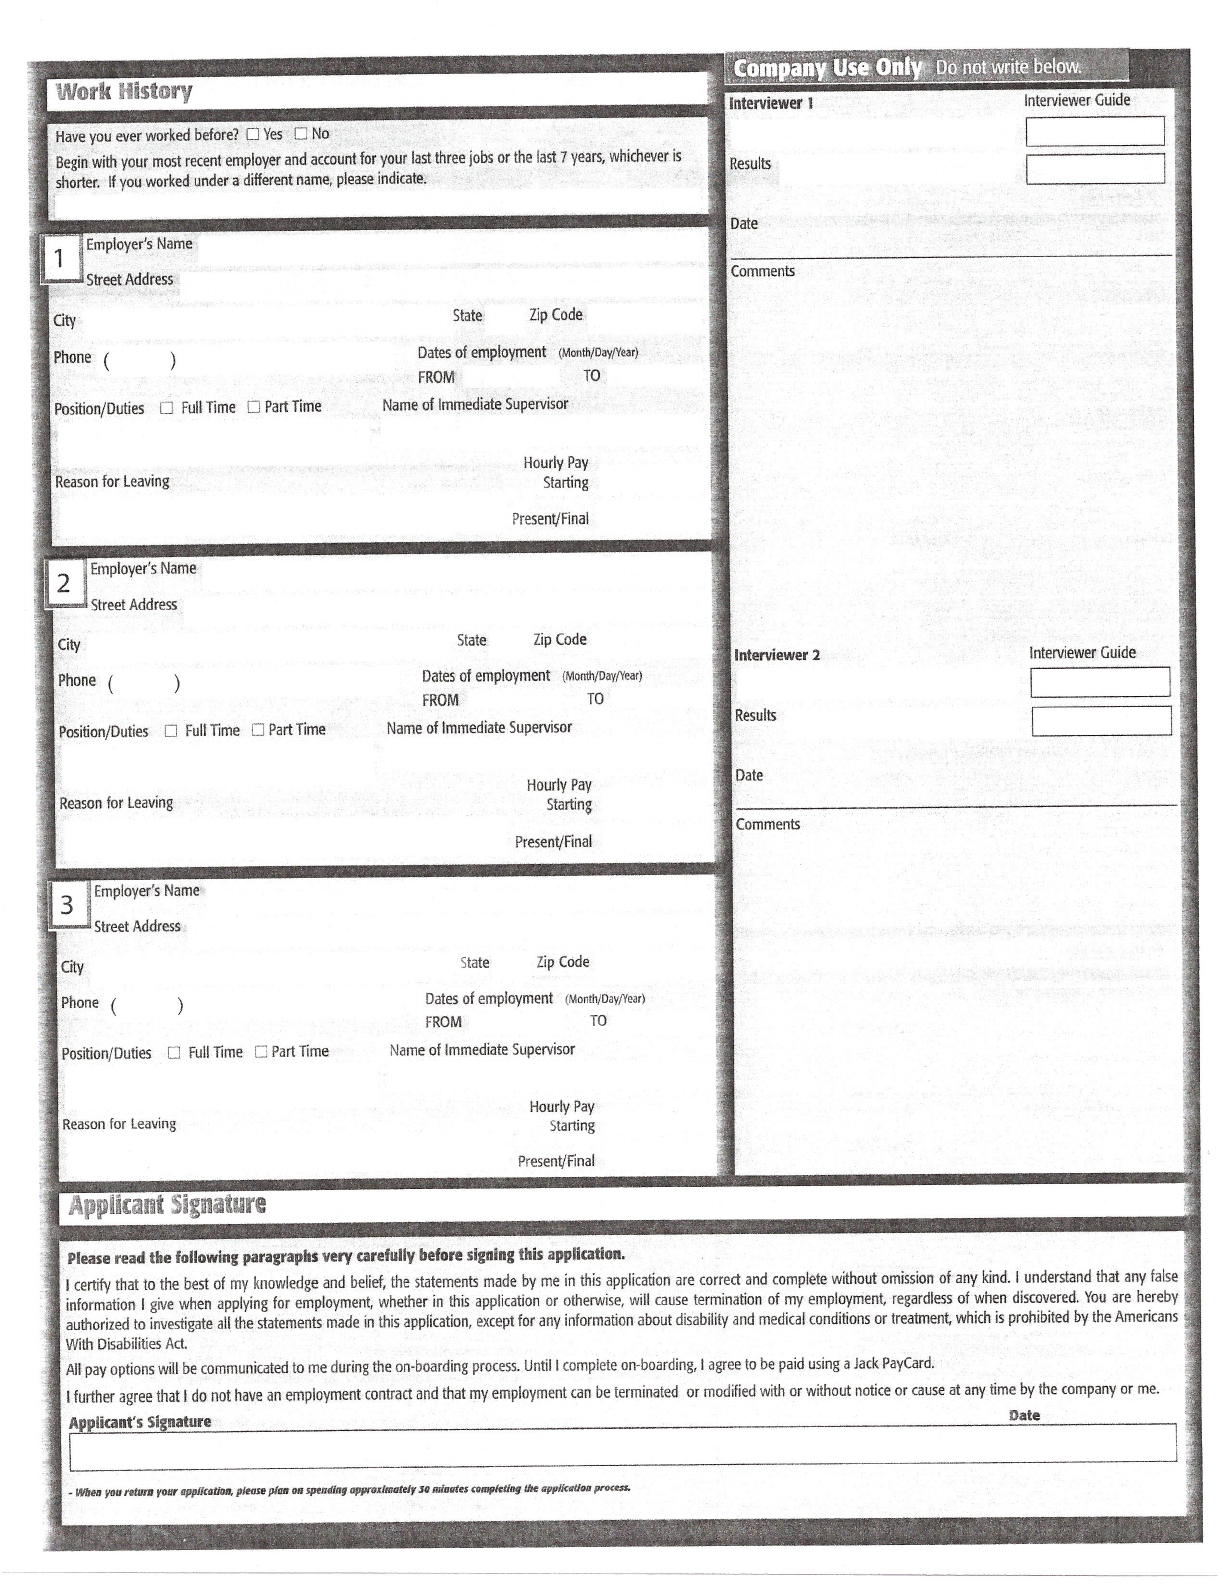 Free Printable Jack In The Box Job Application Form Page 2